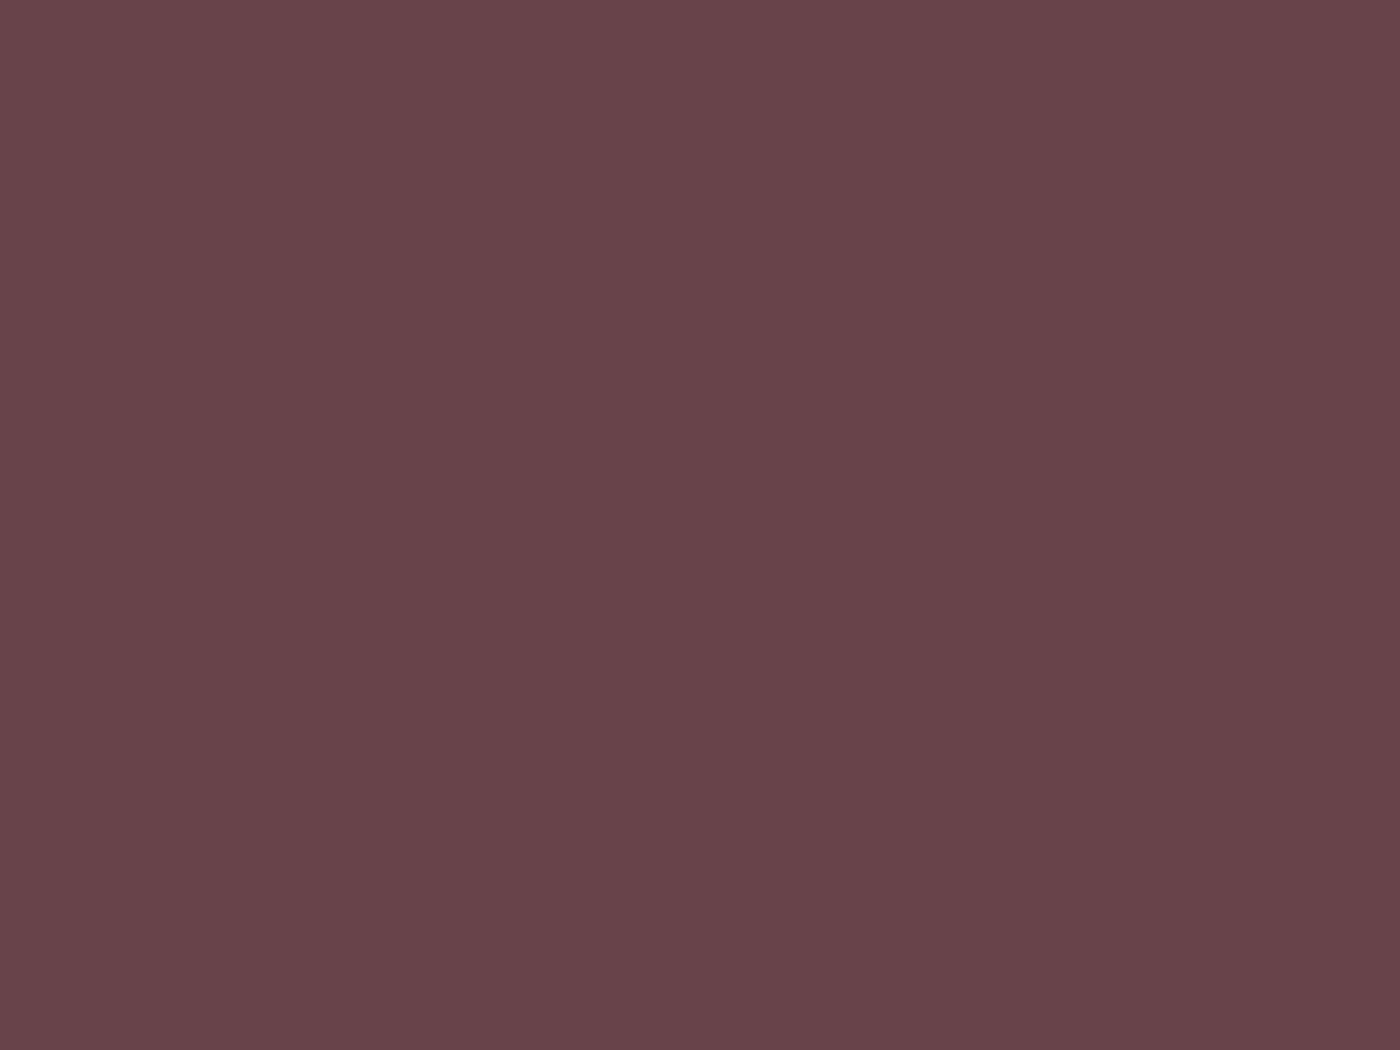 1400x1050 Rose Ebony Solid Color Background